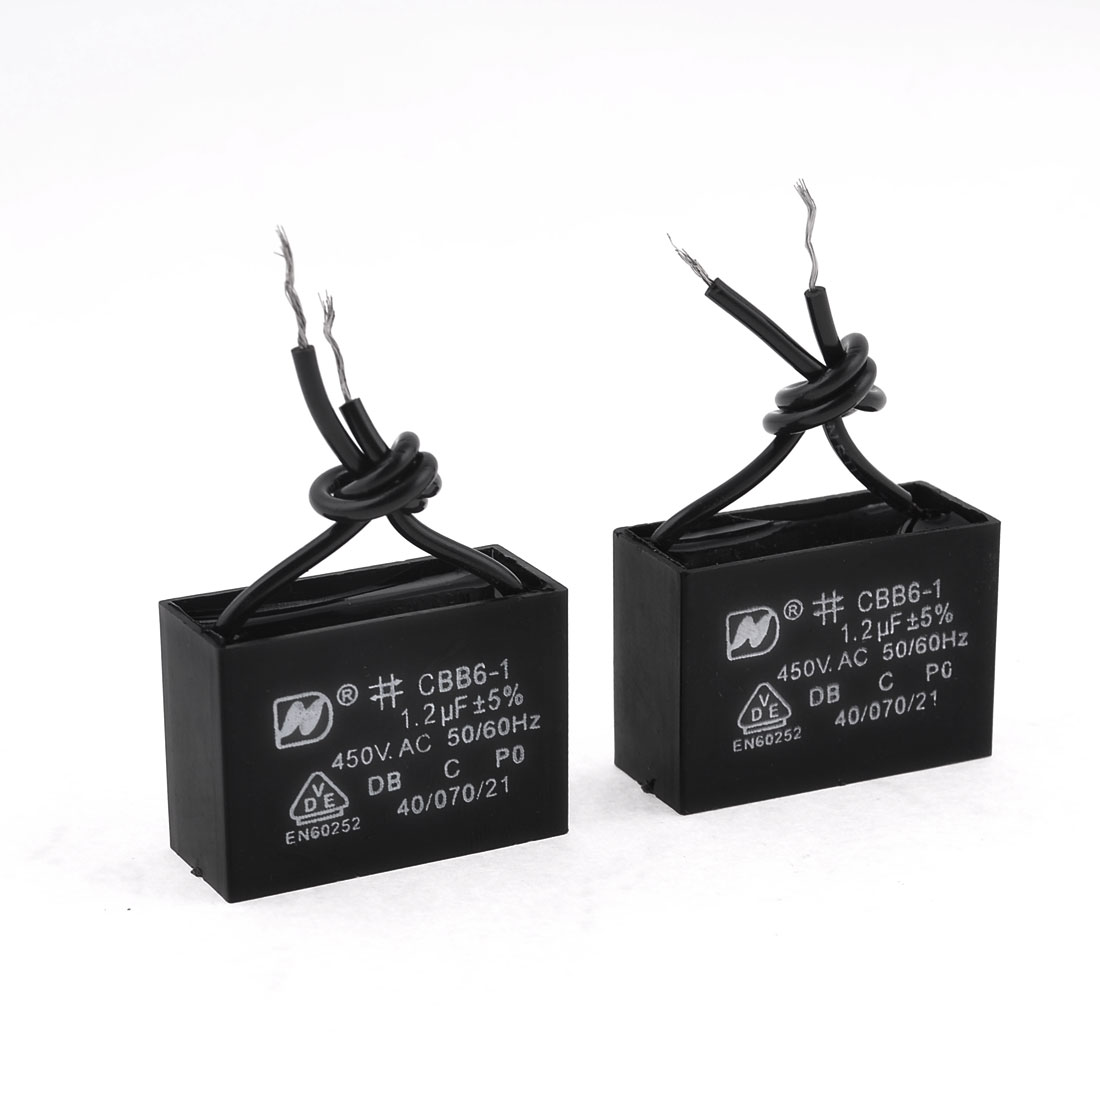 2 Pcs 1.2 uf MFD 450V AC 50/60Hz 2 Black Wire Electric Fan Capacitor CBB61